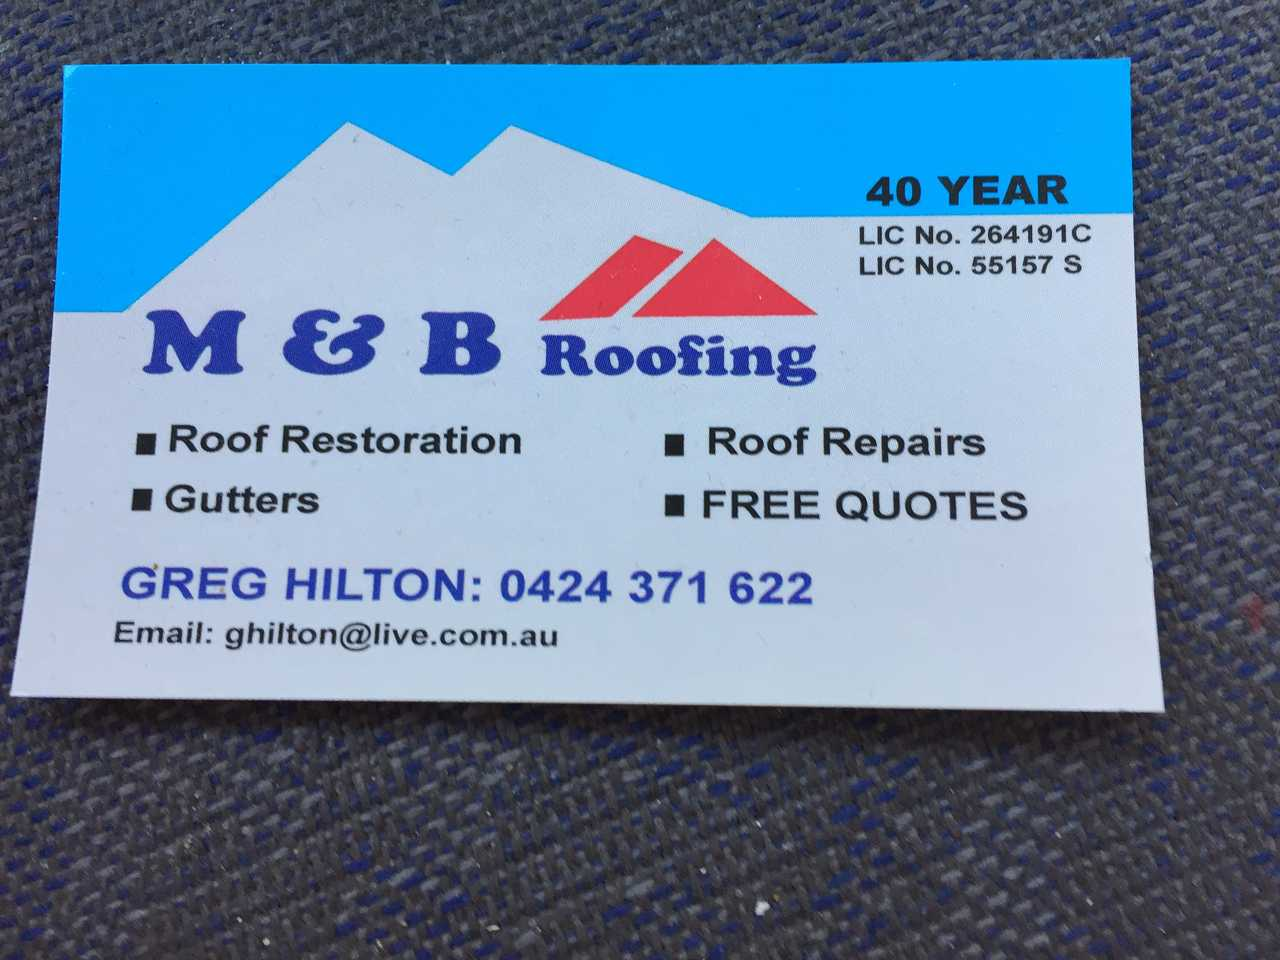 Greg Hilton - Services - Roofing & Guttering in Jamisontown  NSW